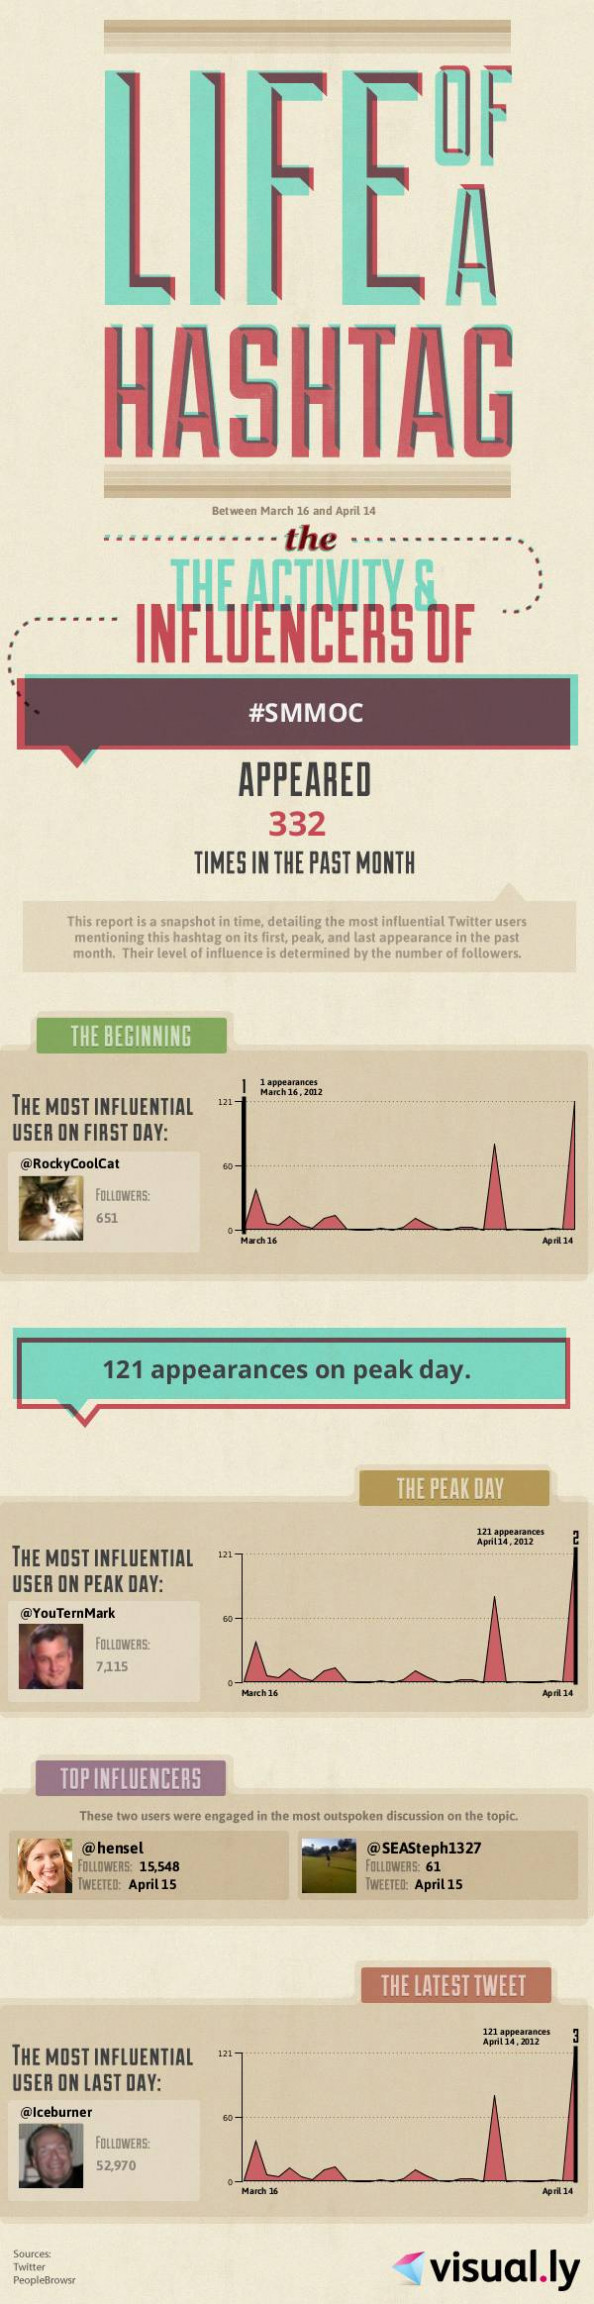 30 Day History of the #SMMOC Hashtag  Infographic Infographic